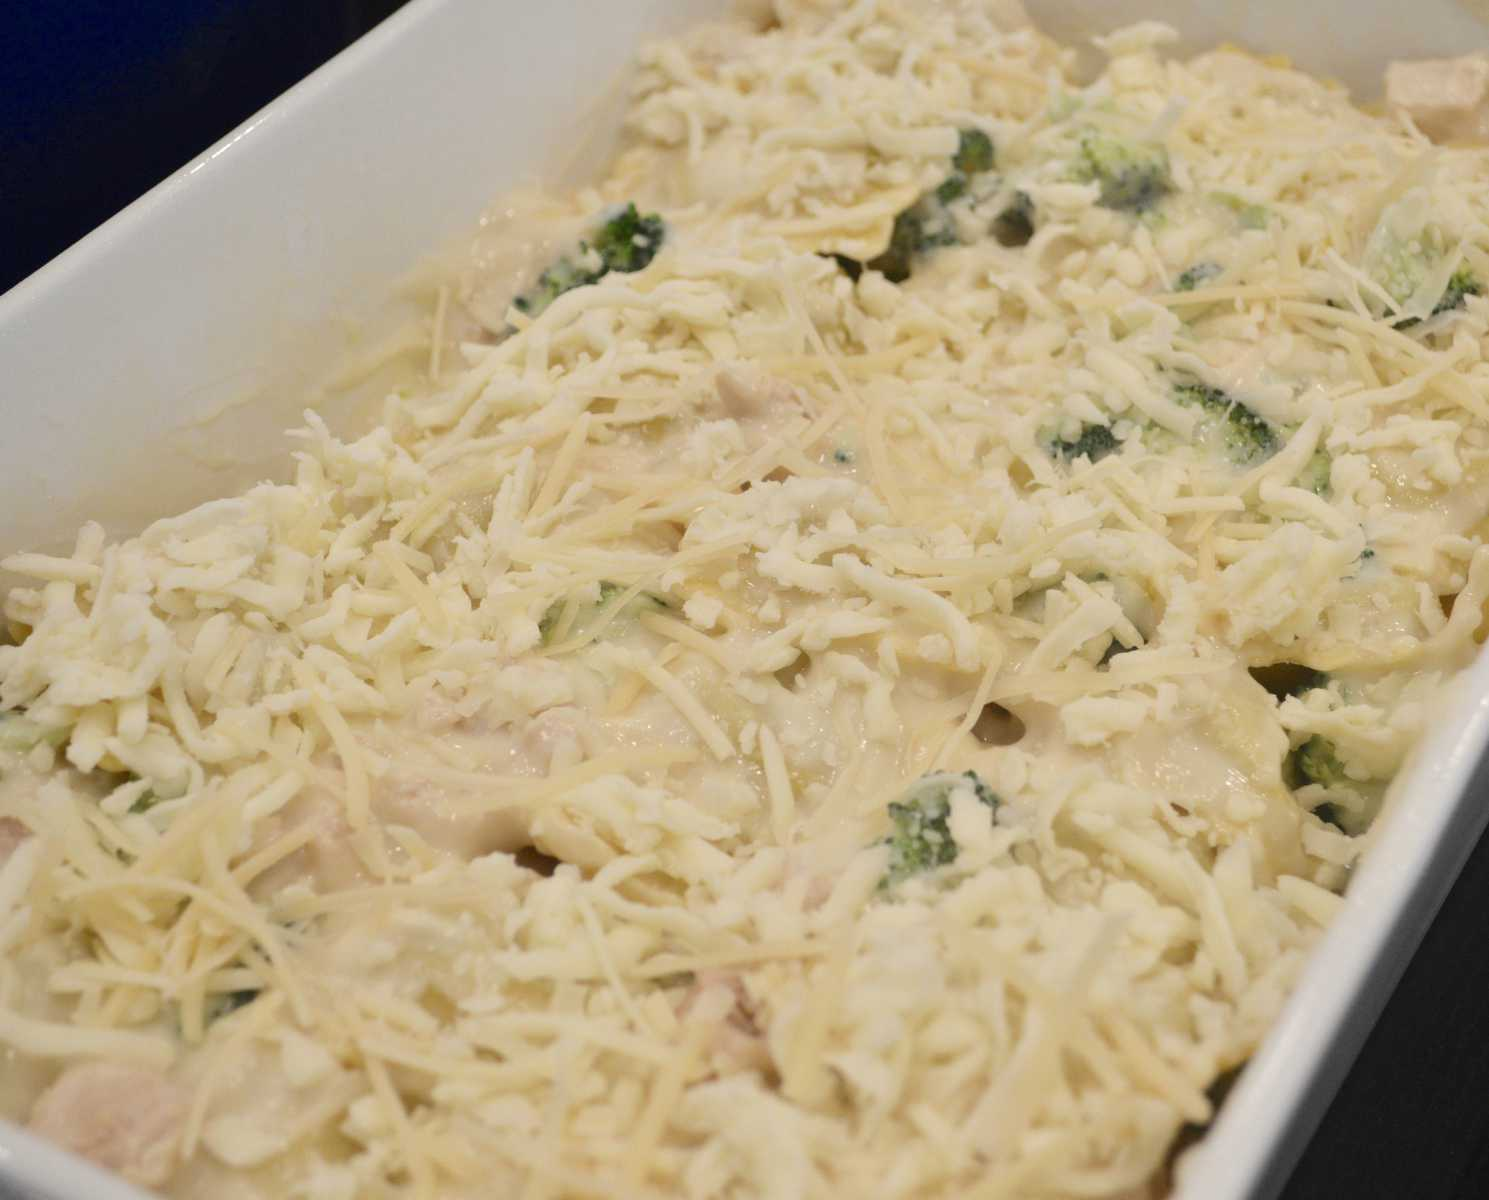 ravioli layered in a baking dish with cheese on top